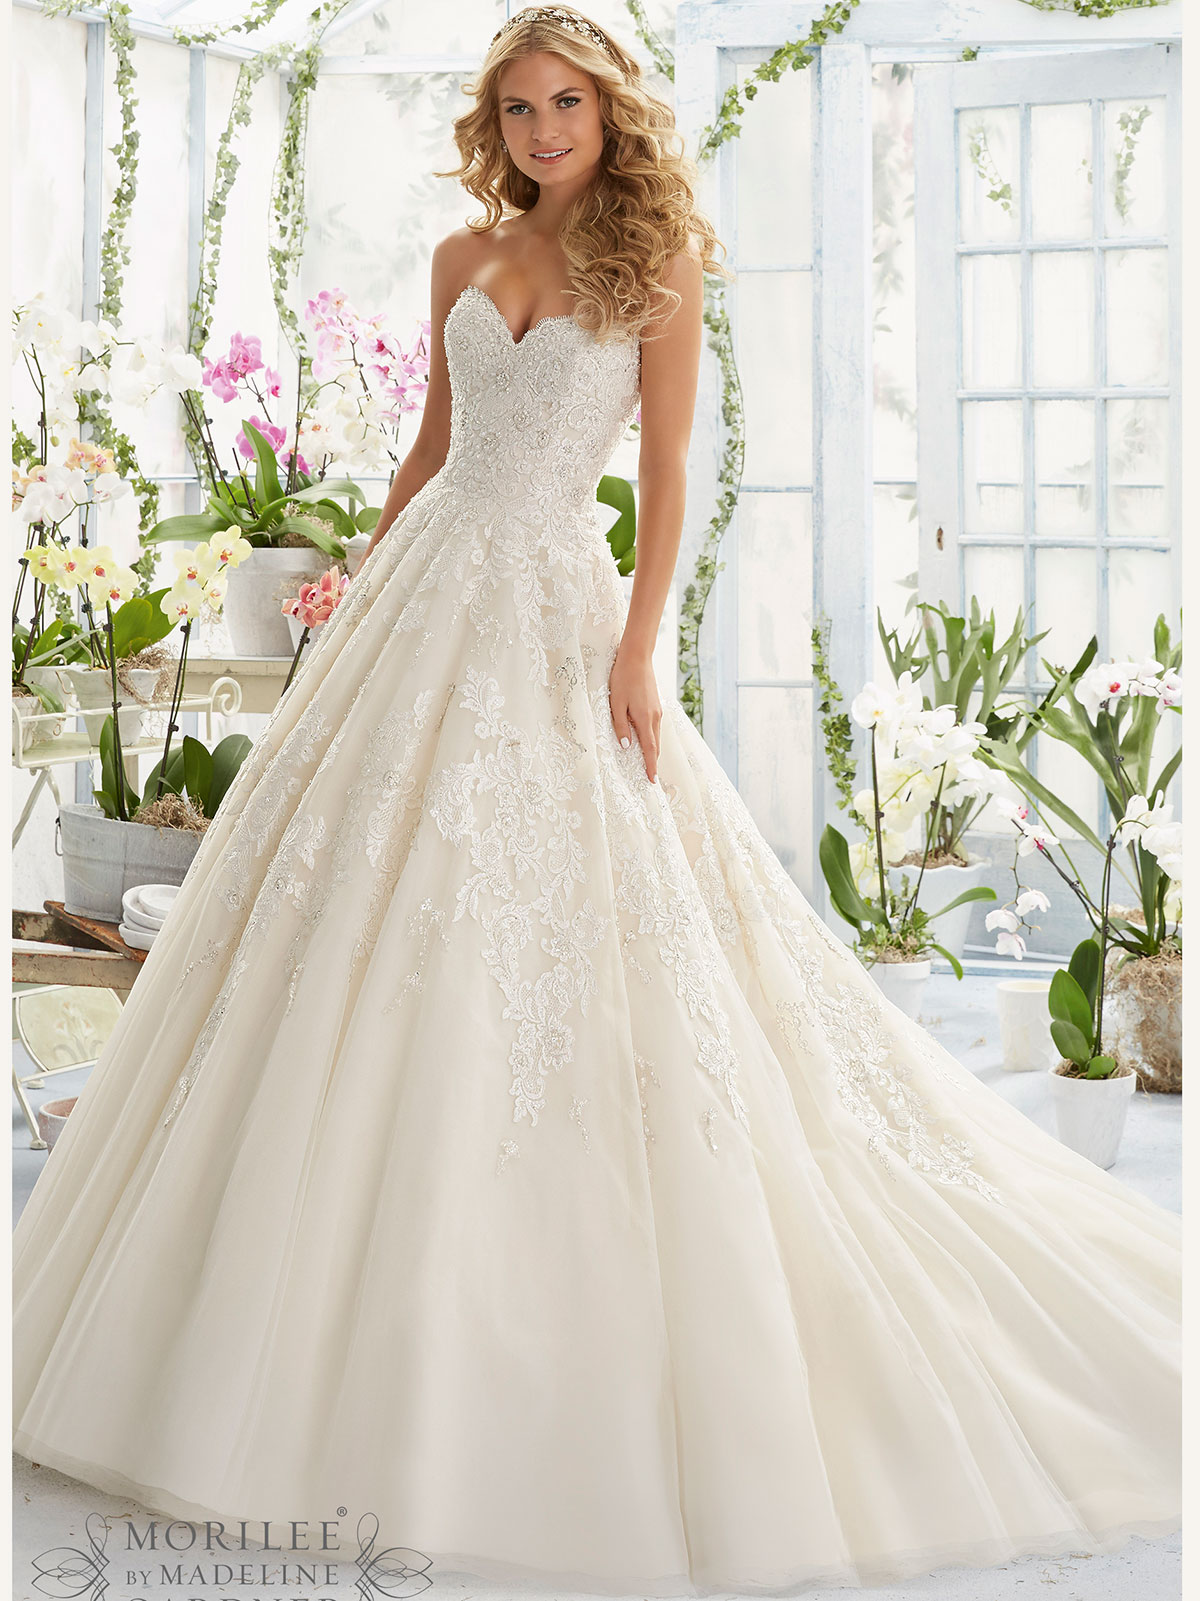 Mori Lee 2808 Sweetheart Ball Gown Bridal Dress